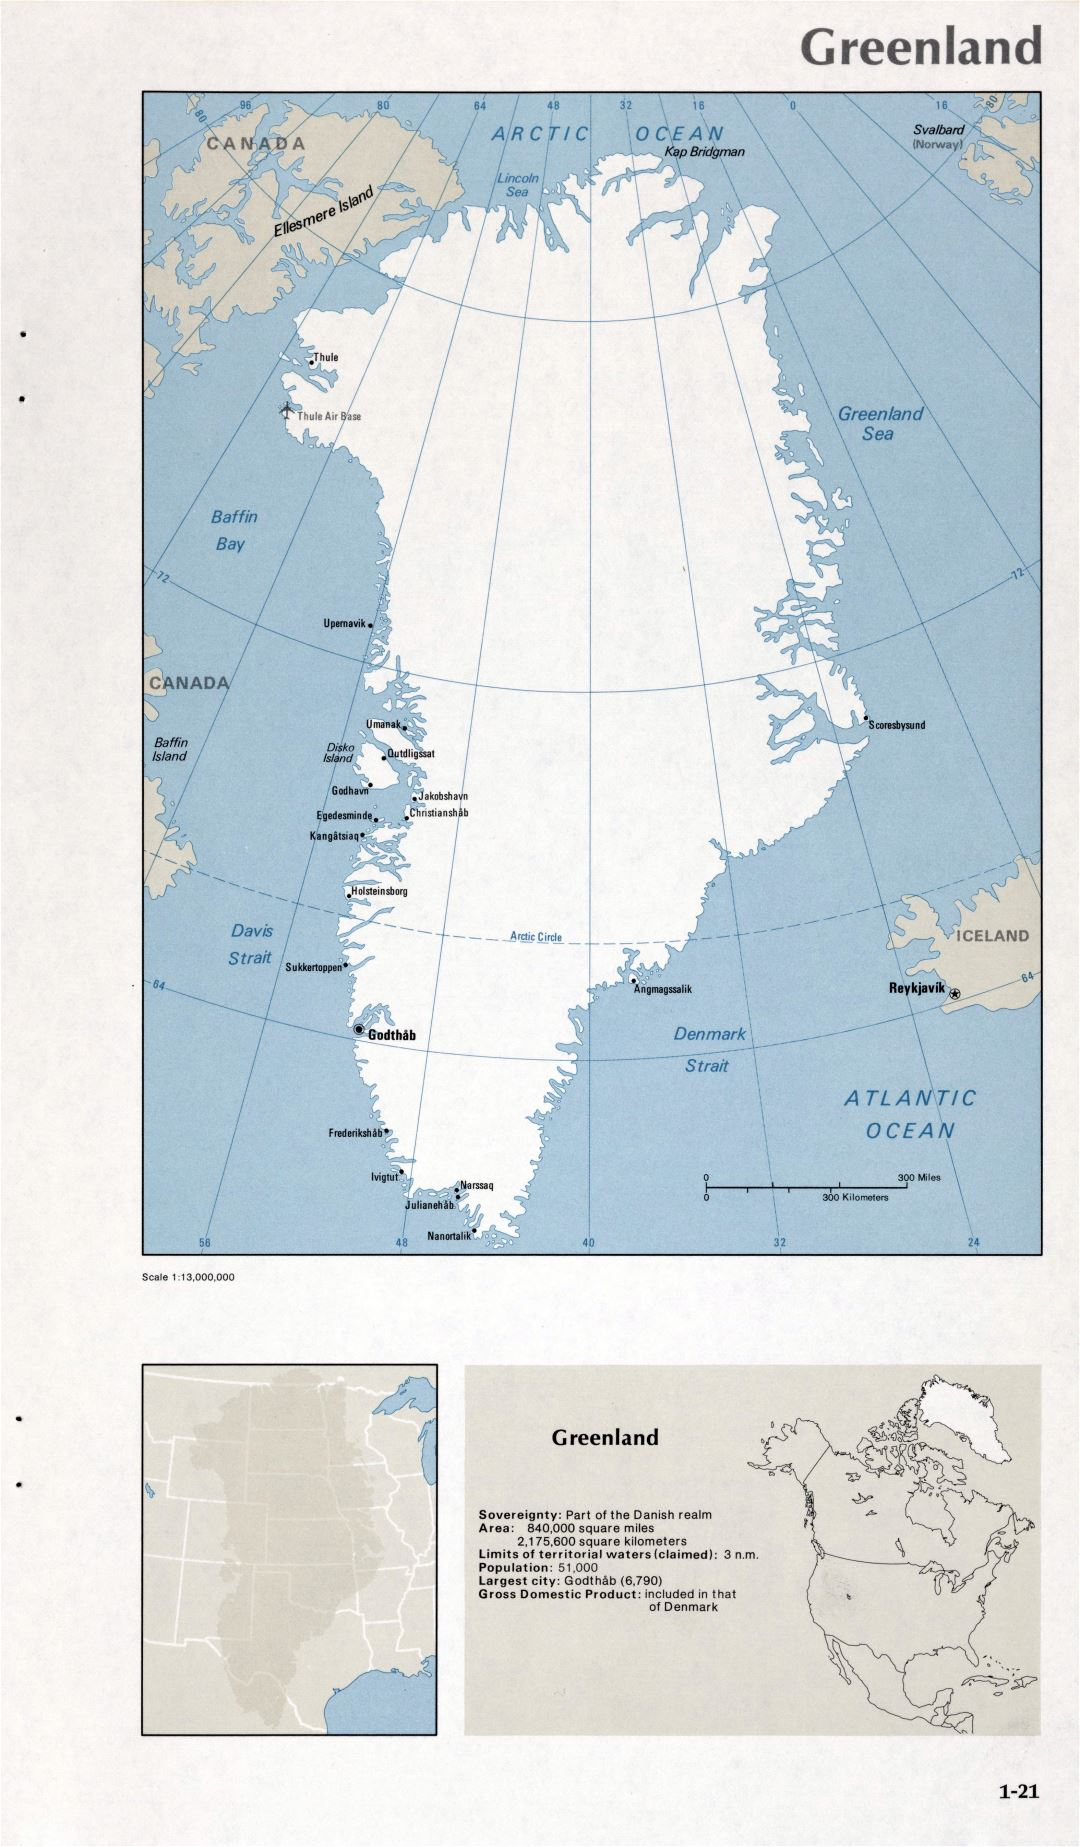 Map of Greenland (1-21)